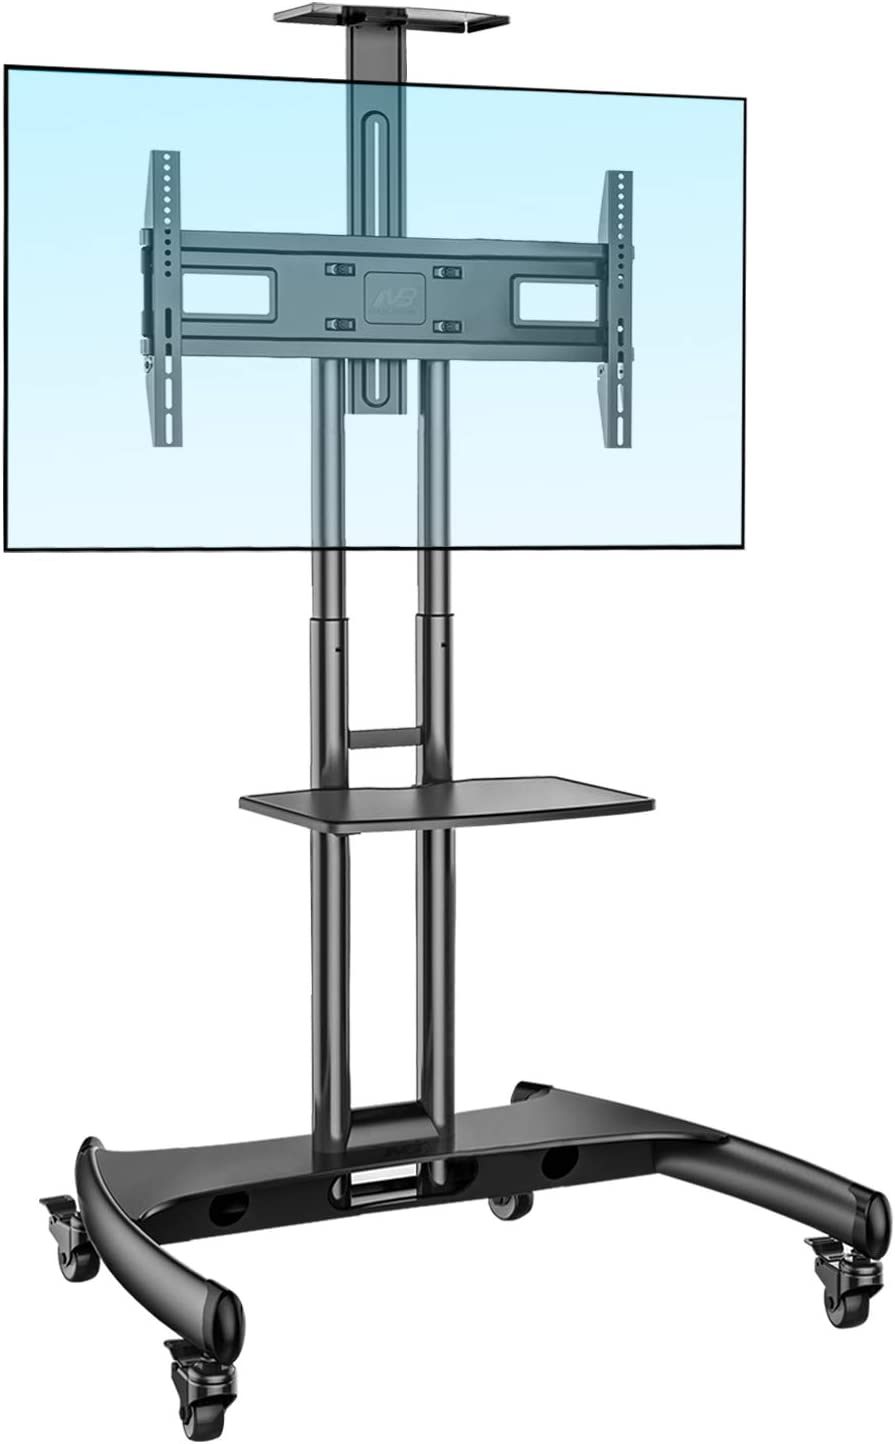 NB North Bayou Mobile TV Cart TV Stand with Wheels for 32 to 65 Inch LCD LED OLED Plasma Flat Panel Screens up to 100lbs AVA1500-60-1P (Black): Electronics